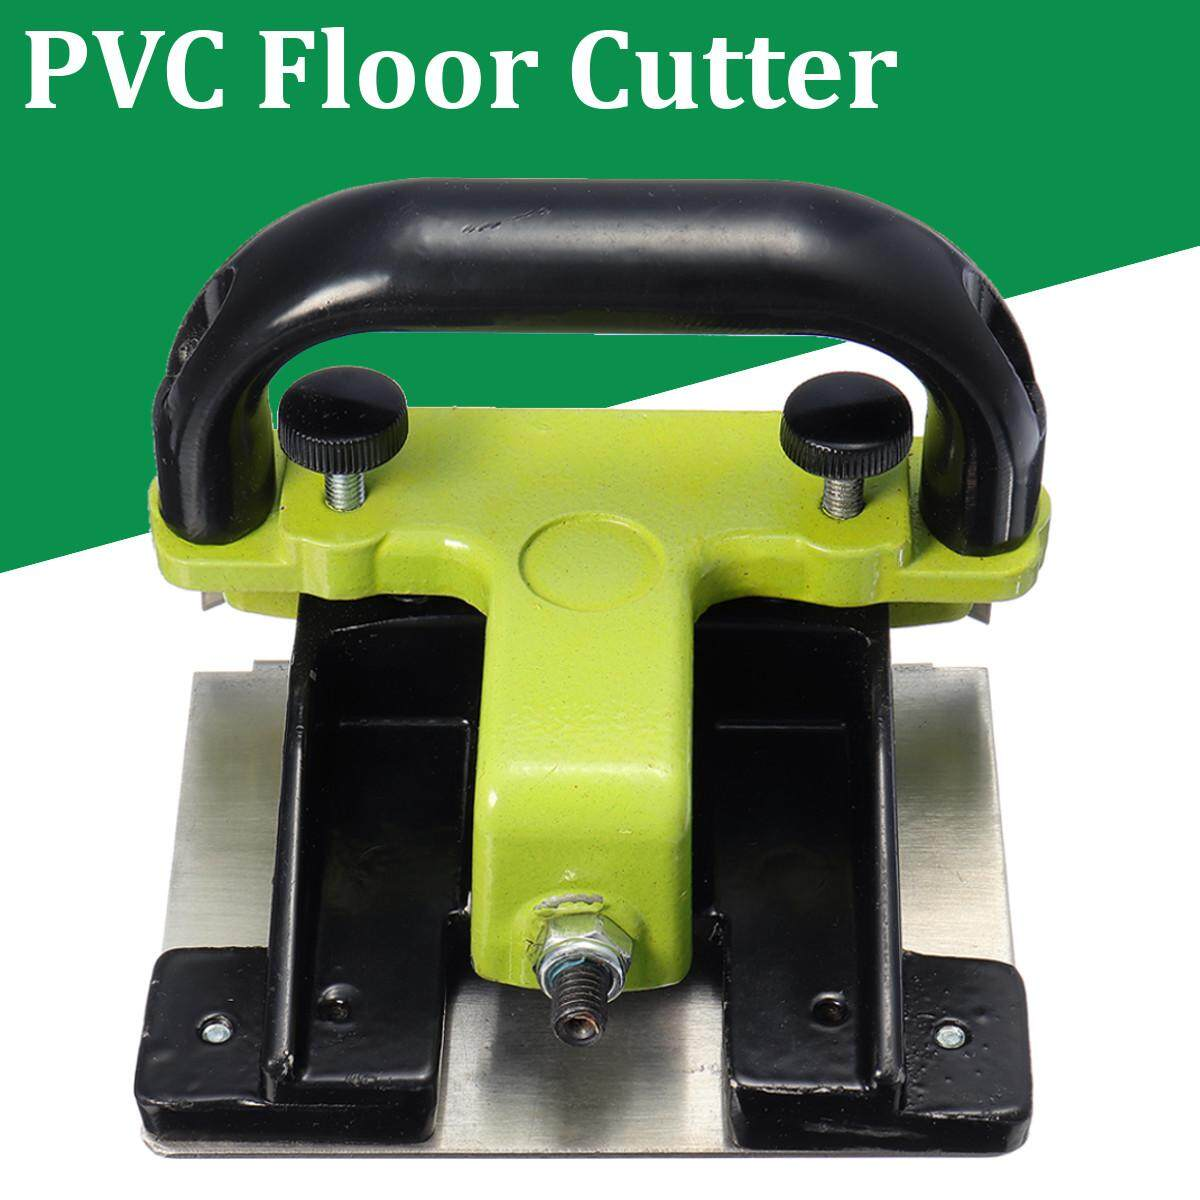 PVC Floor Cutter Flooring Installation Tool Cutting K nife Scrap Trimming Machine